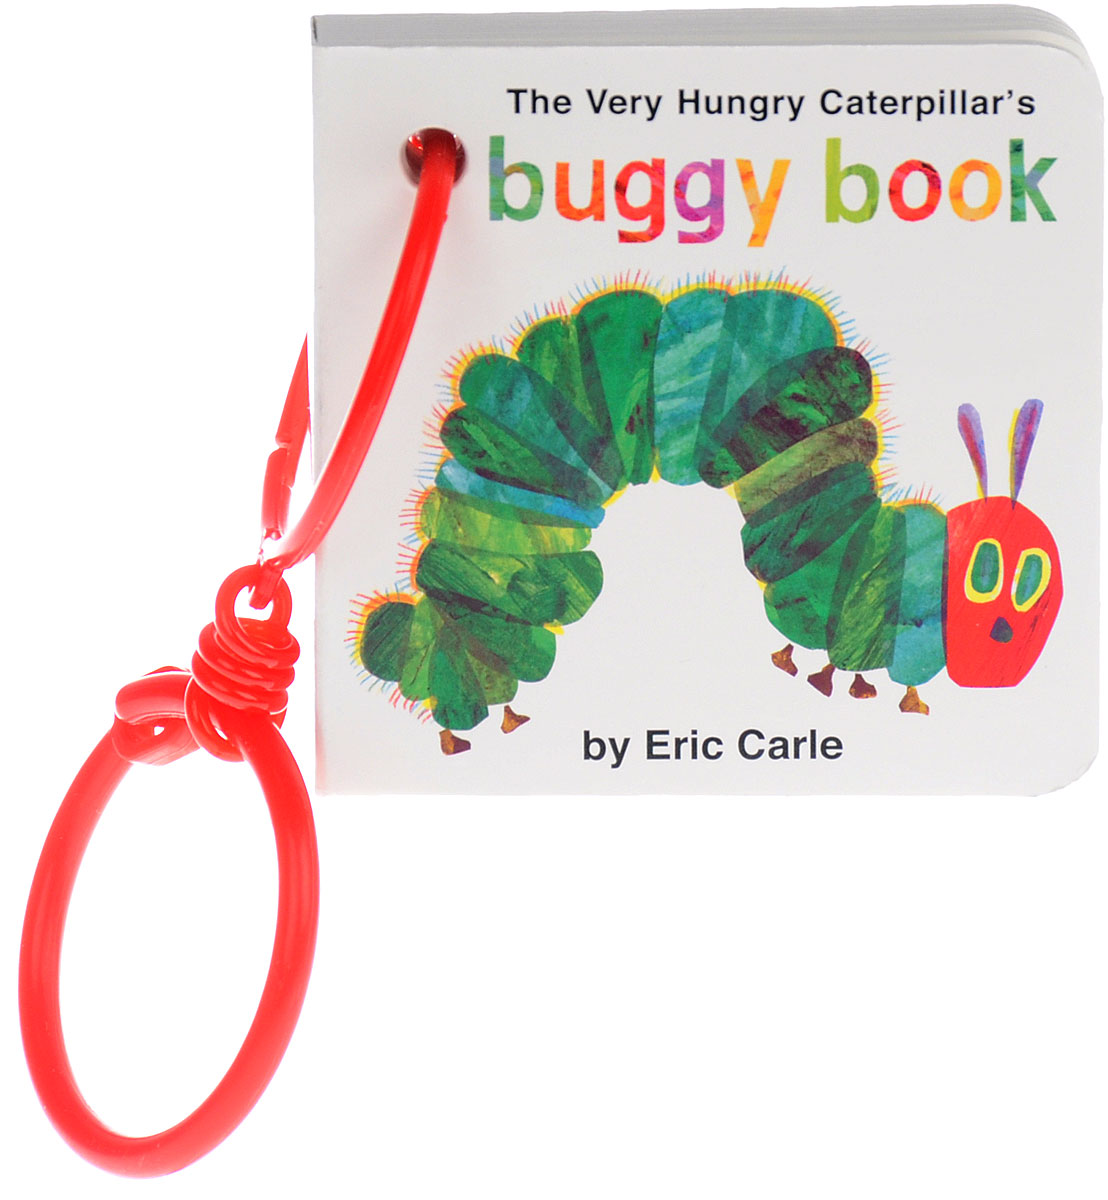 The Very Hungry Caterpillar's Buggy Book (миниатюрное издание) my own very hungry caterpillar colouring book